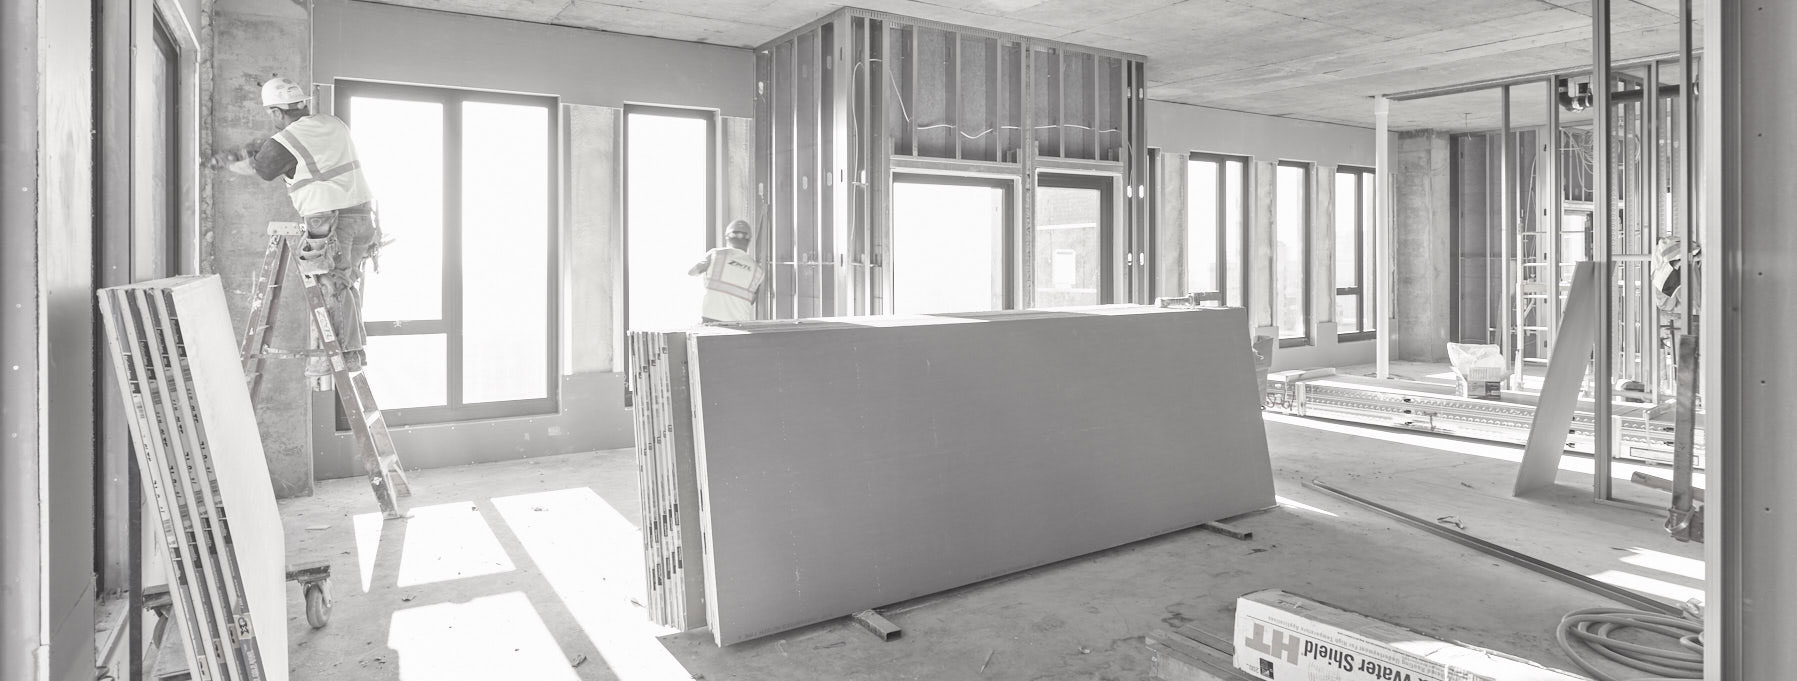 under construction/interior/b&w/Mortenson/architectural photography